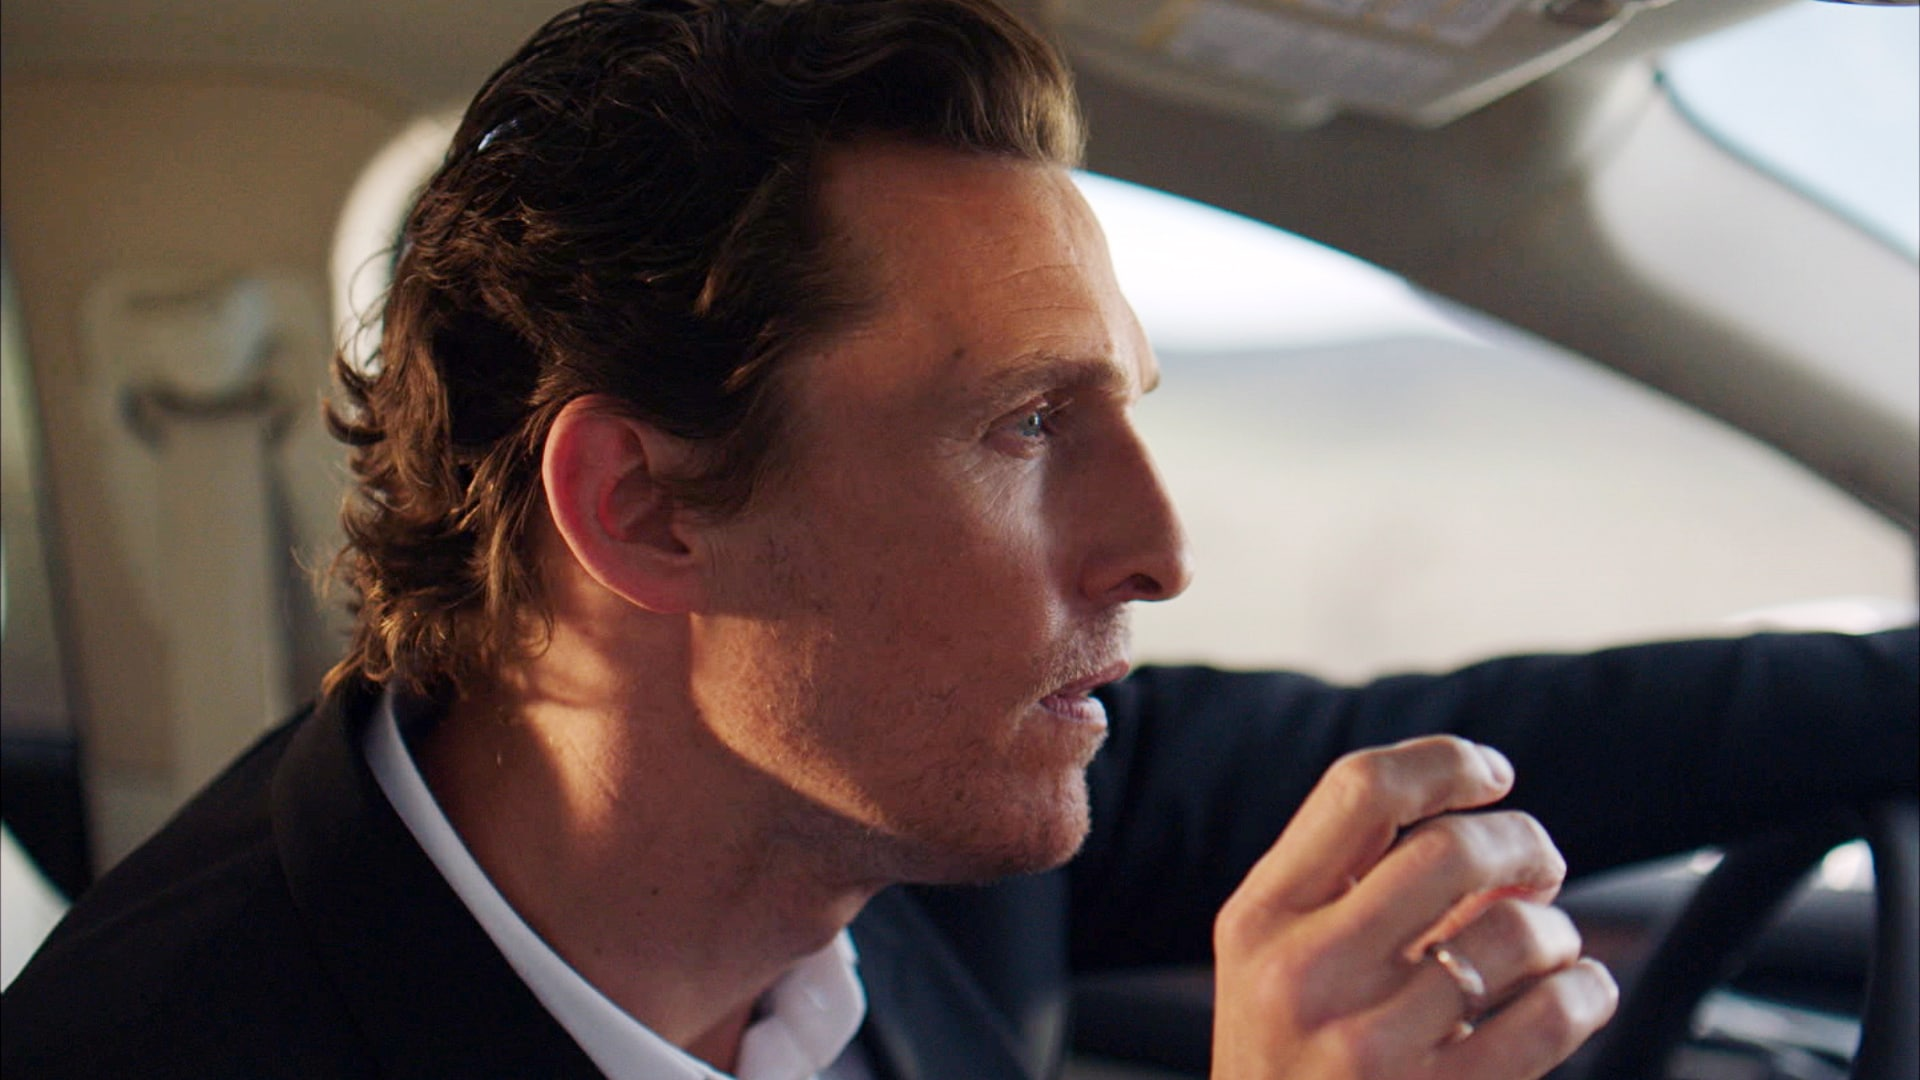 Matthew McConaughey Could Appear in Spider-Man 3 As This Major Villain